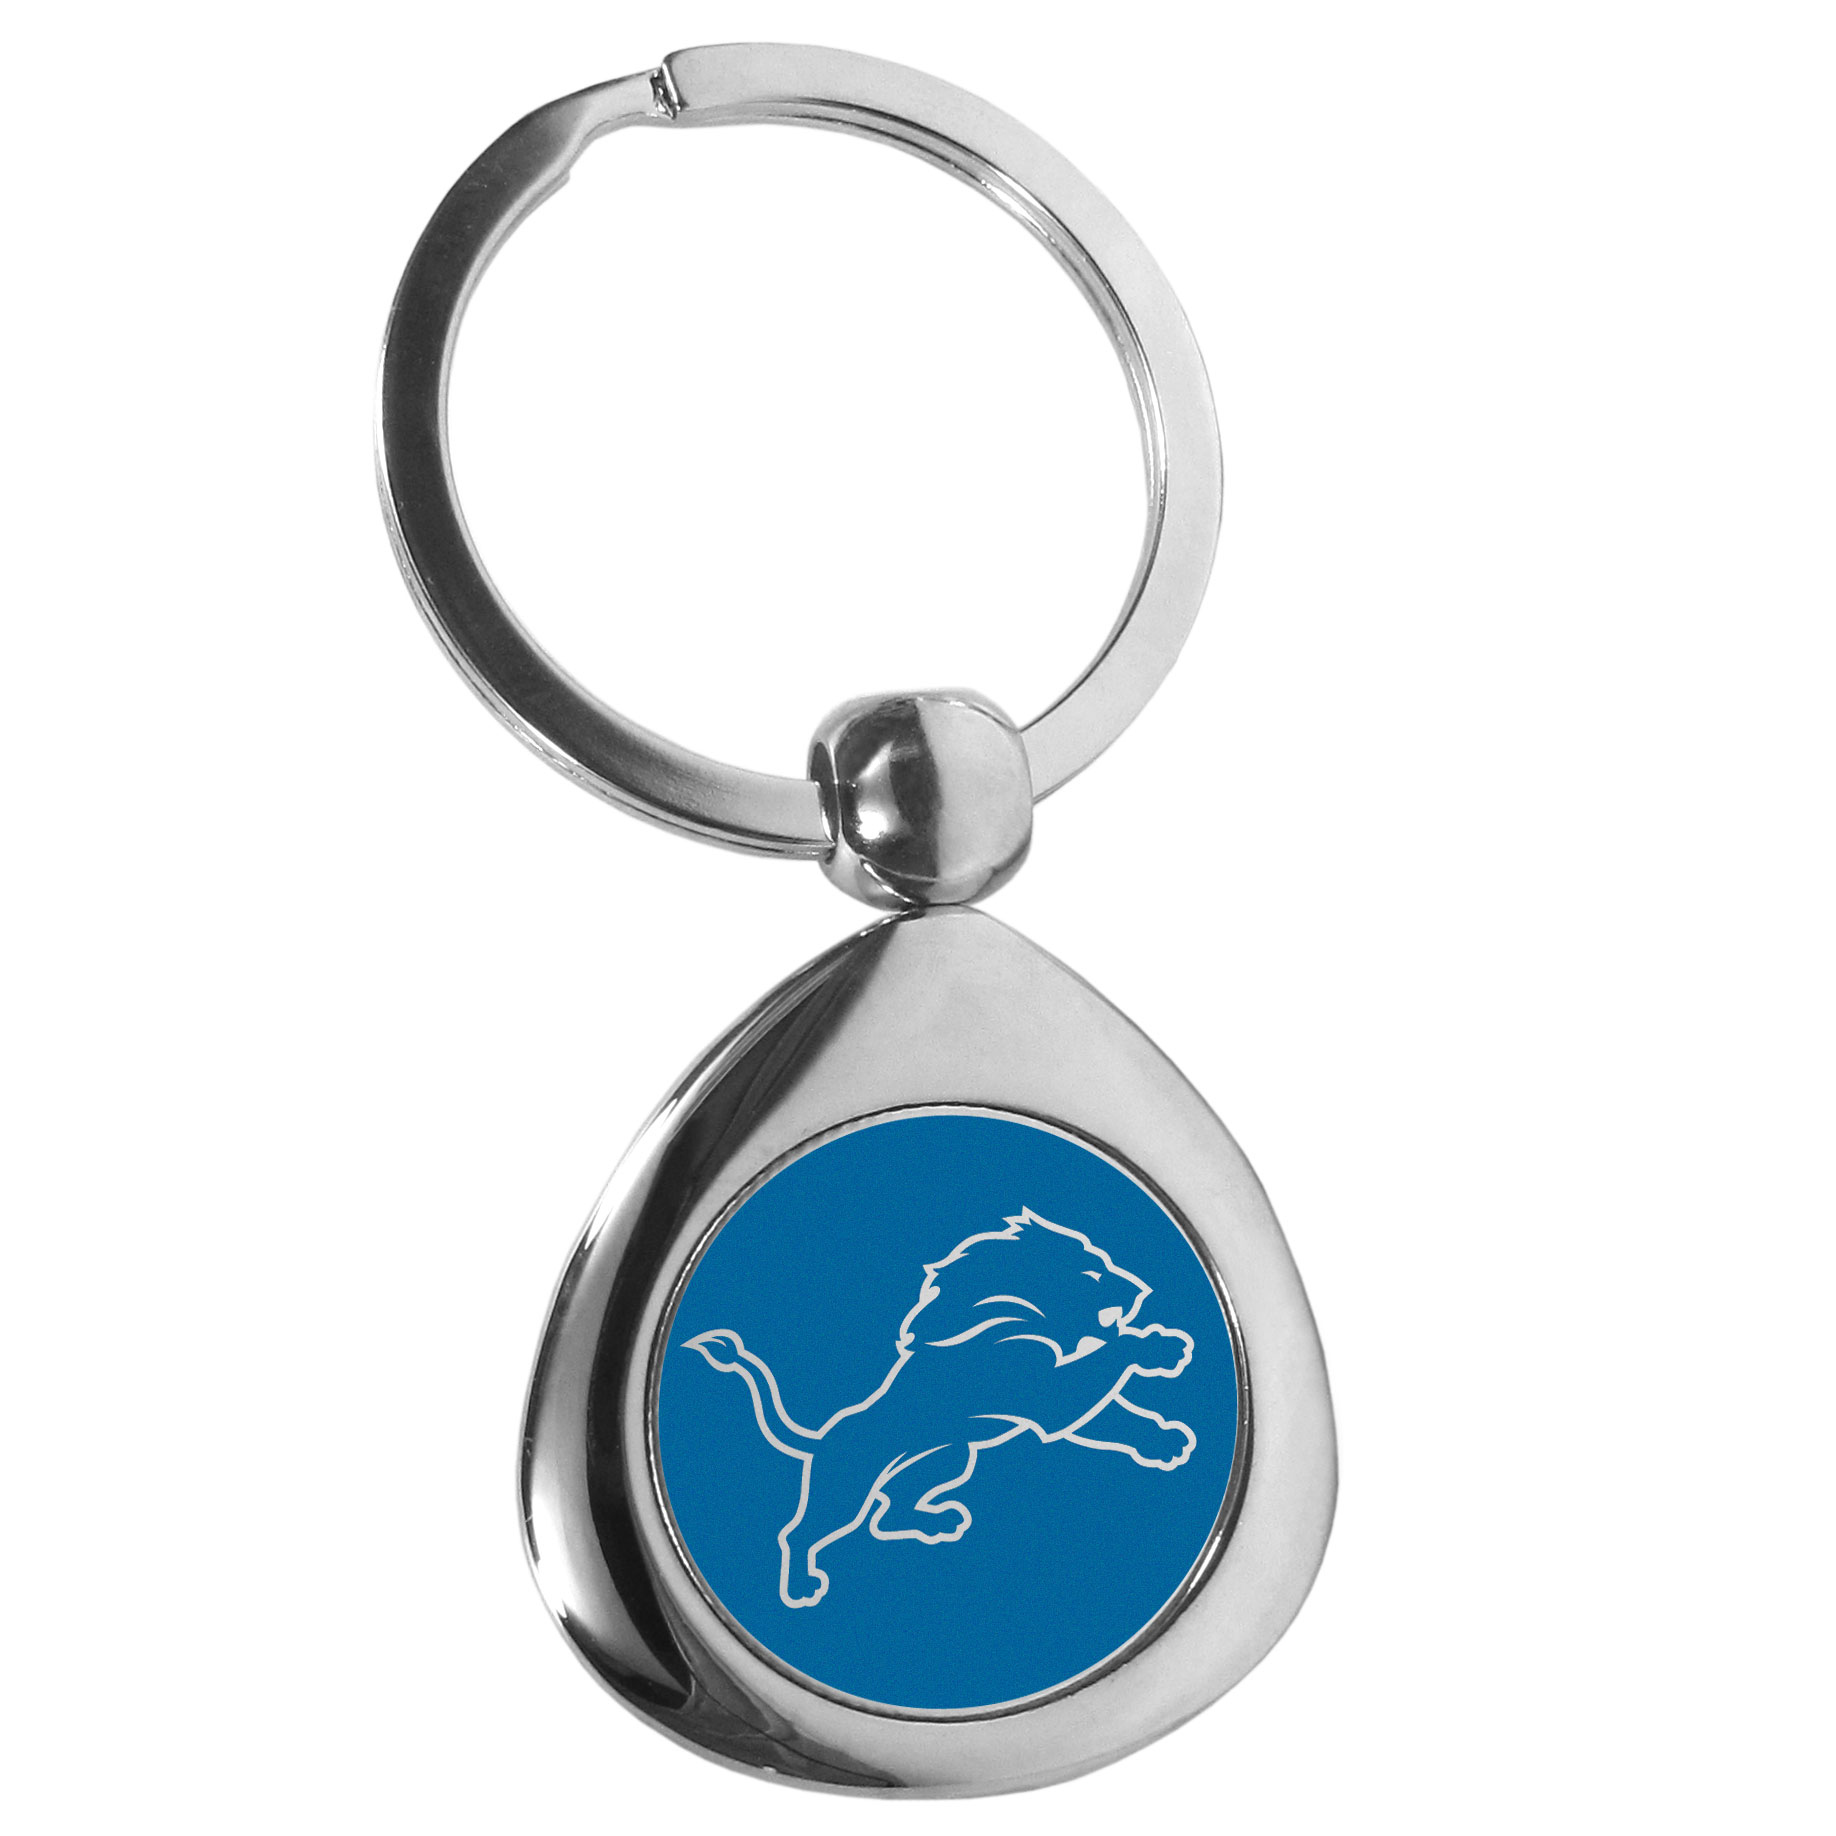 Detroit Lions Round Teardrop Key Chain - Our high polish chrome Detroit Lions round teardrop key chain has a classy look with a sporty twist. The high-quality key fob features the team logo in the team's primary color. The key ring is a flat split ring that is easier to load you home and auto keys onto.